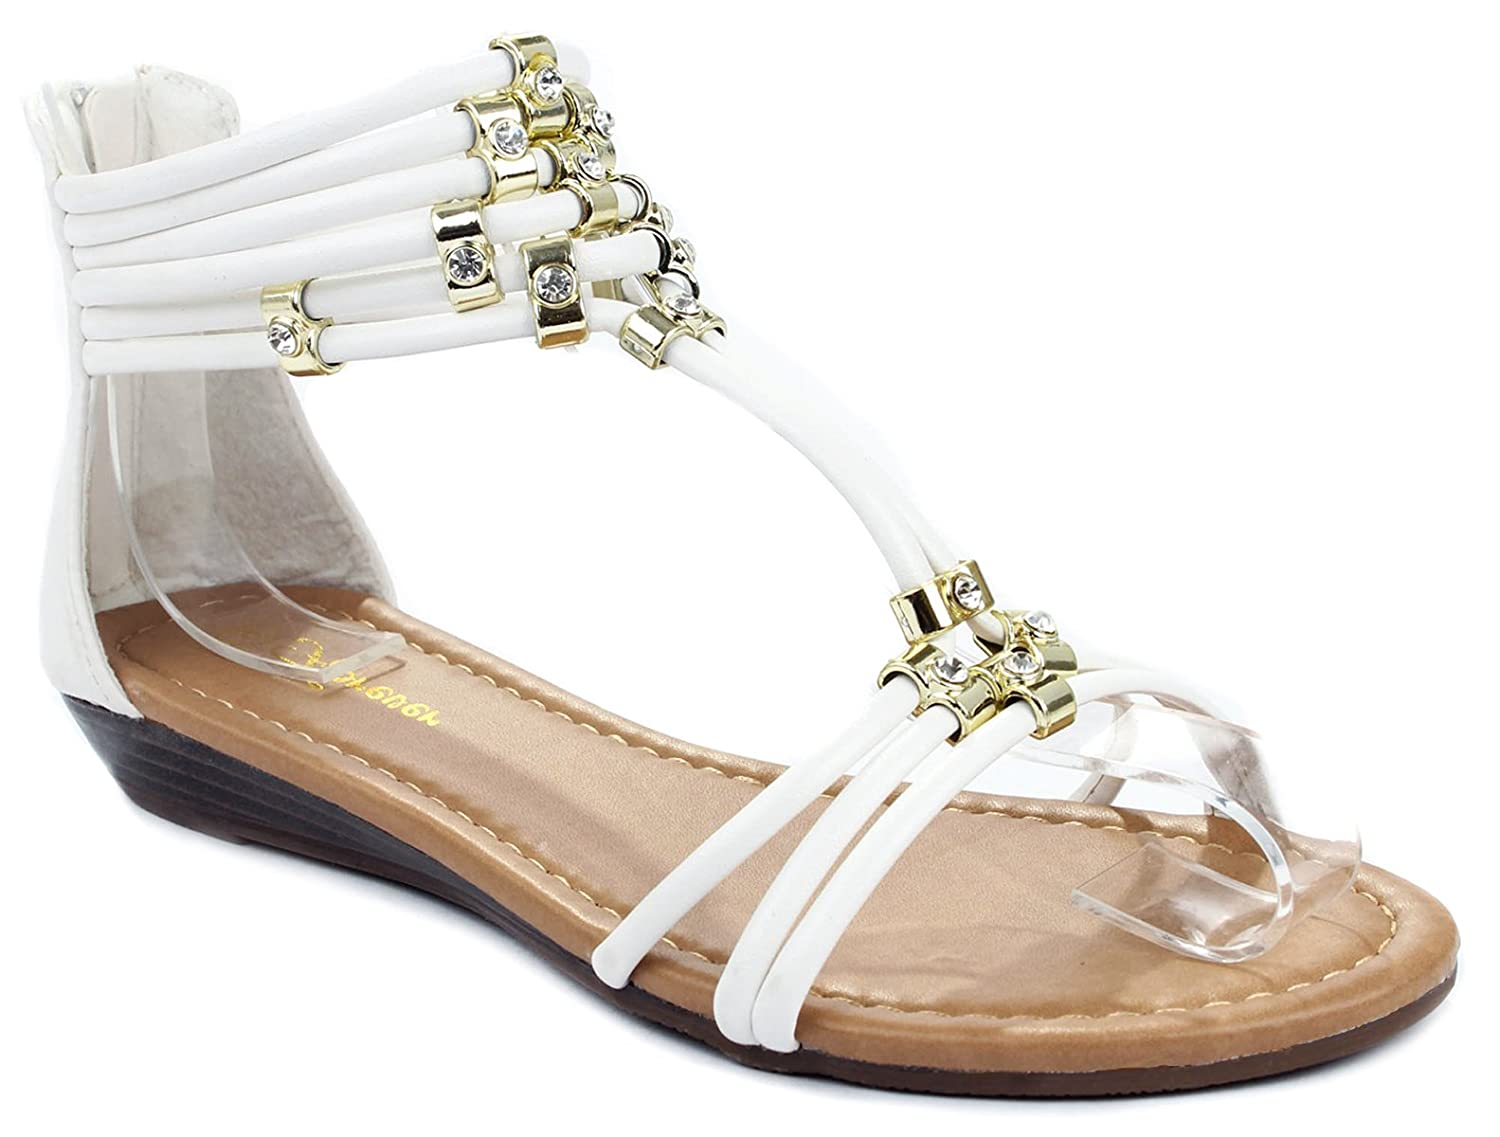 Filosia28 T-Strappy Cord Gold Accent Rhinestone Ankle Cuff Wedge Dress Sandals B00WTMQ9LG 6.5 B(M) US|White